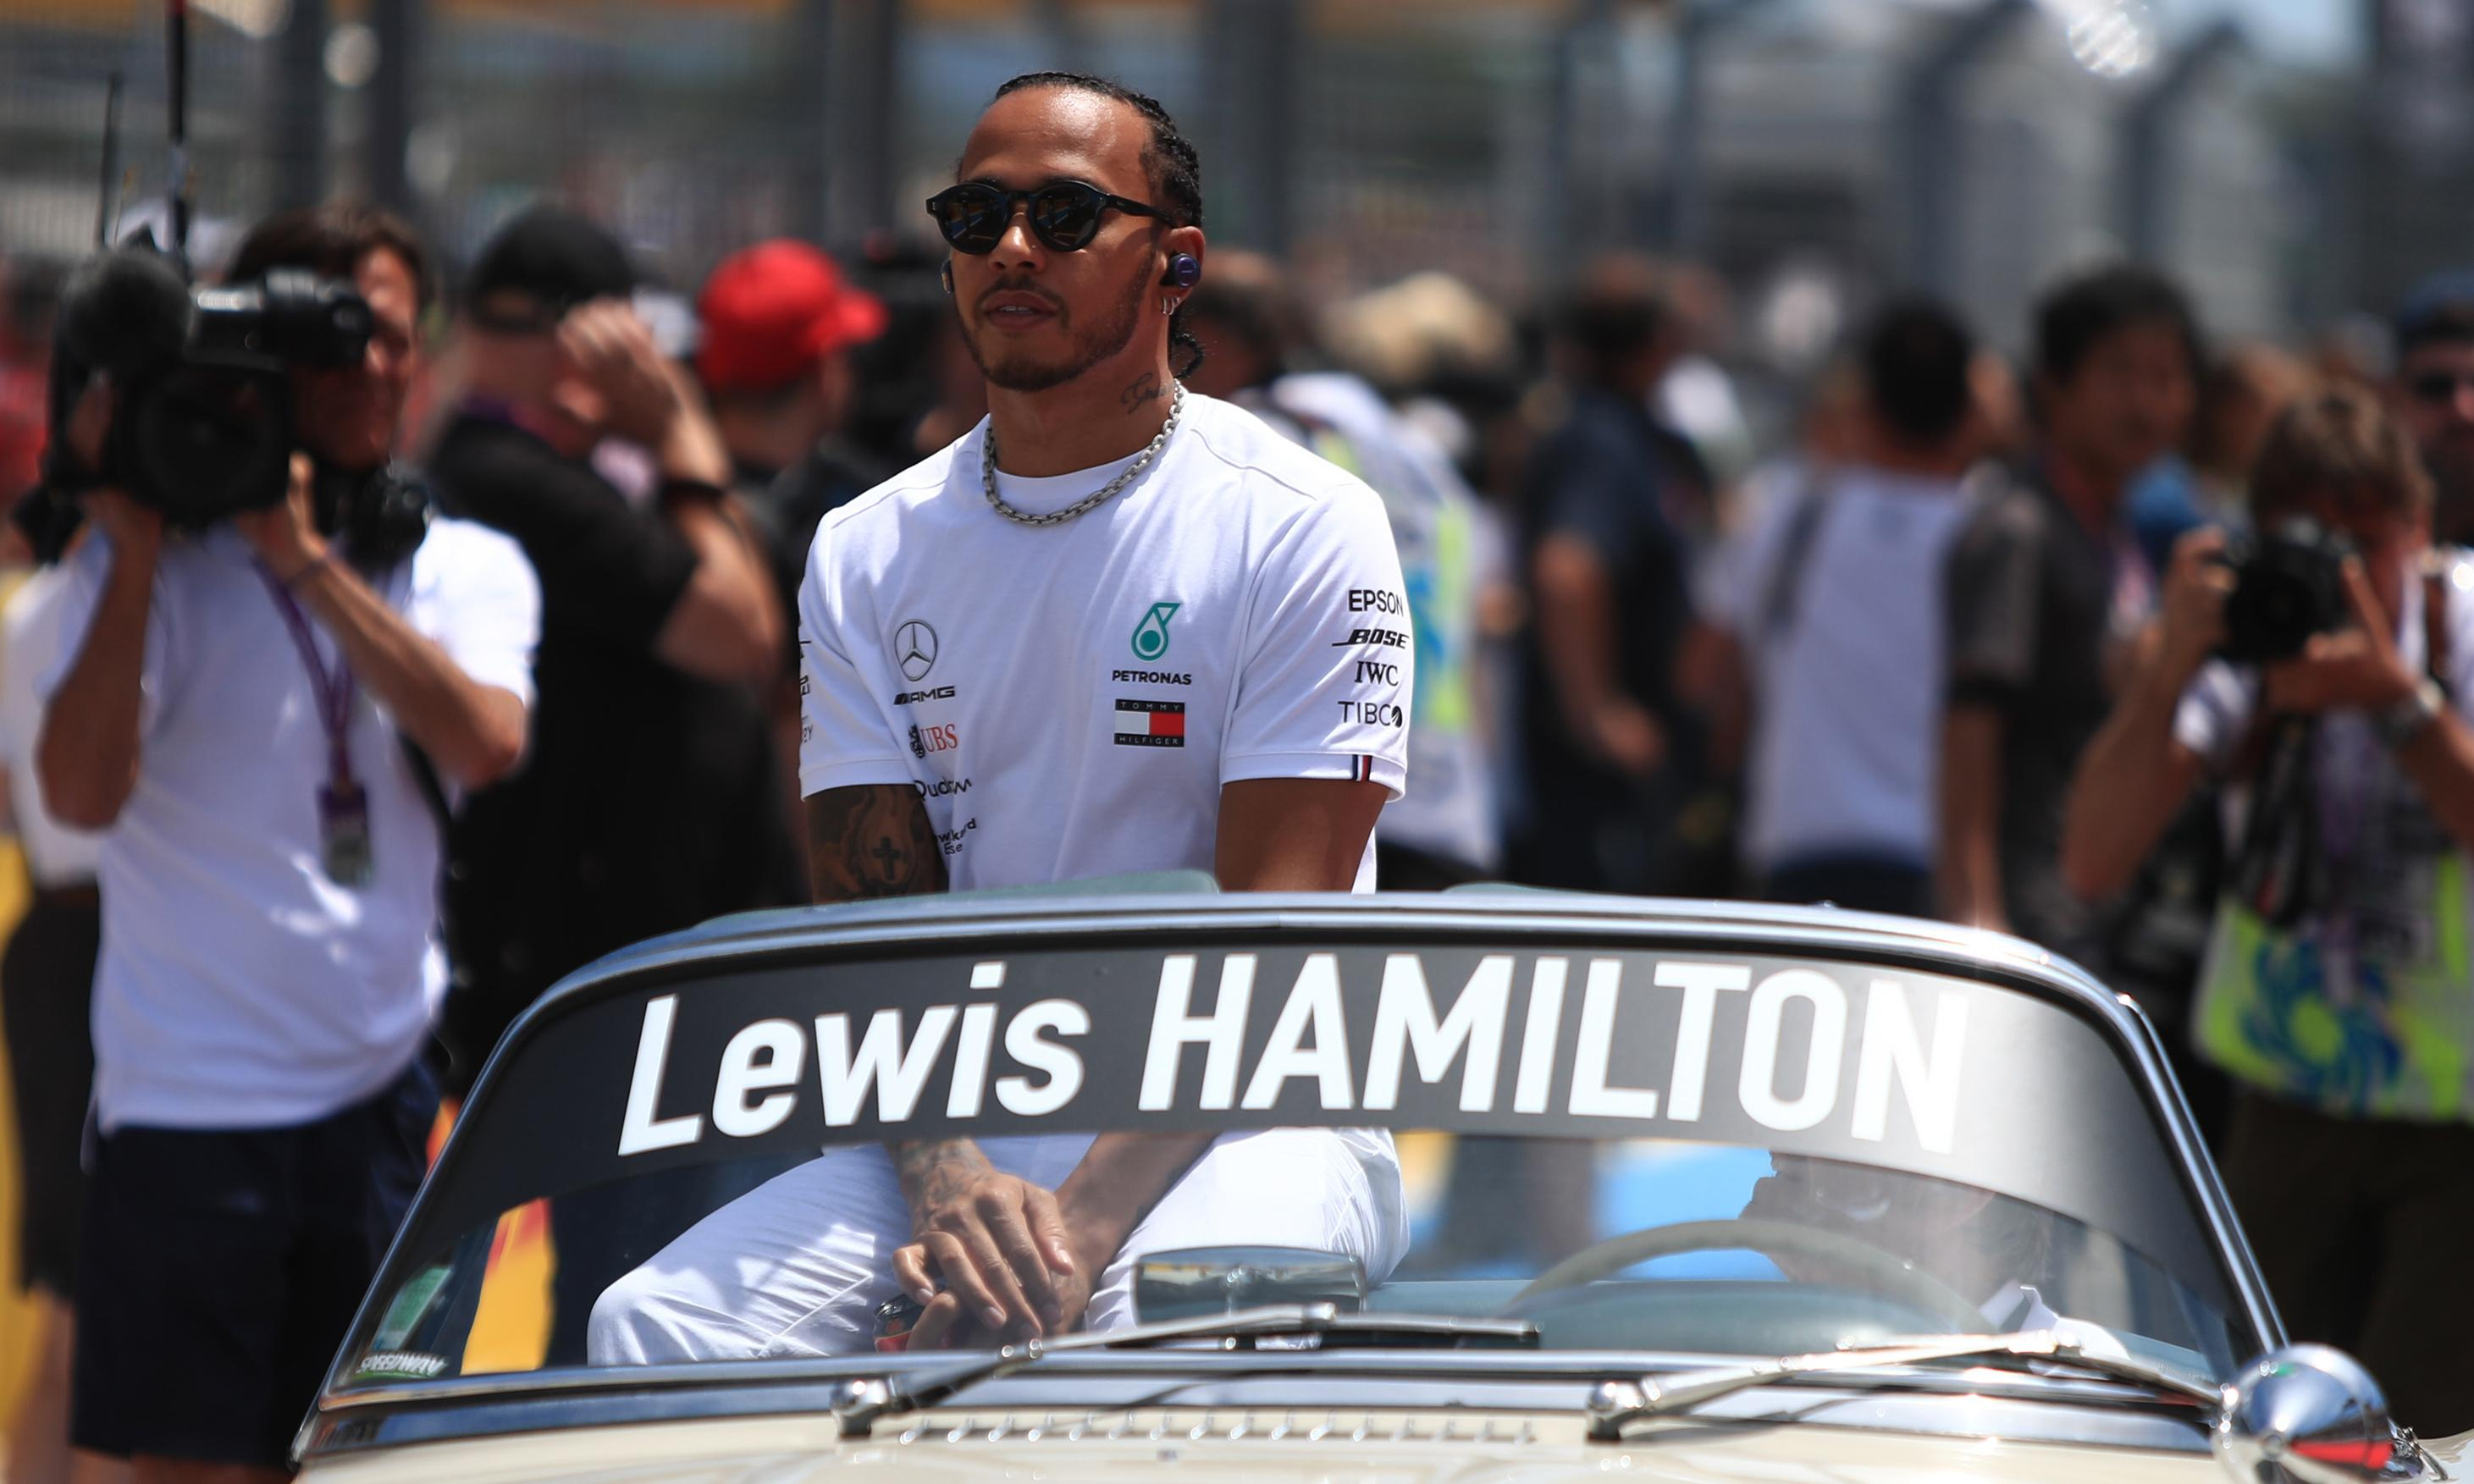 Lewis Hamilton looks unassailable while George Russell shows his class